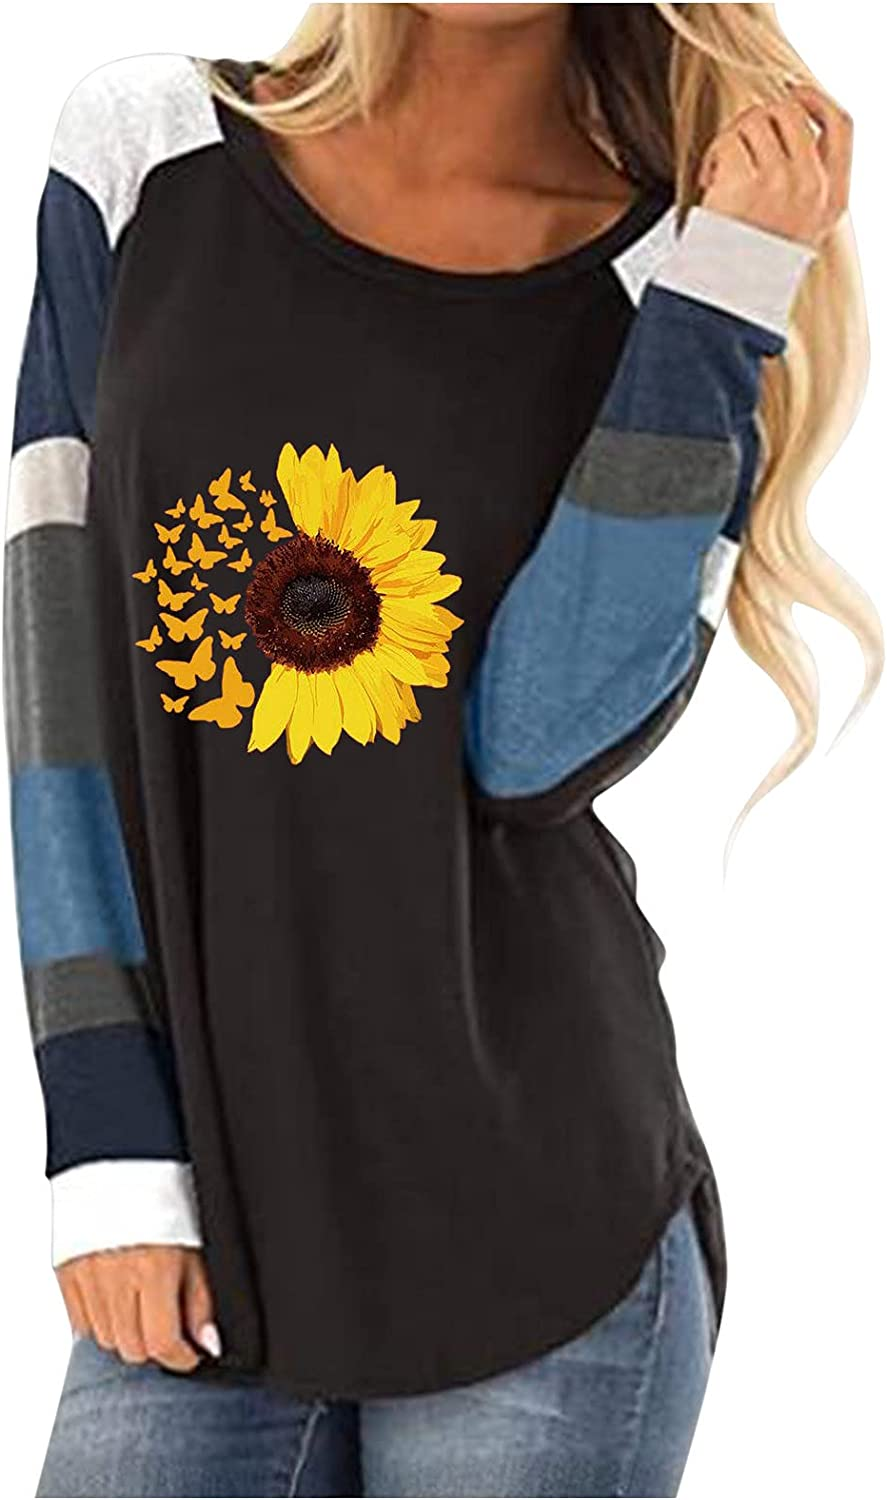 Womens Long Sleeve T Shirts Sunflower Graphic Loose Fit Crewneck Casual Blouse Tops